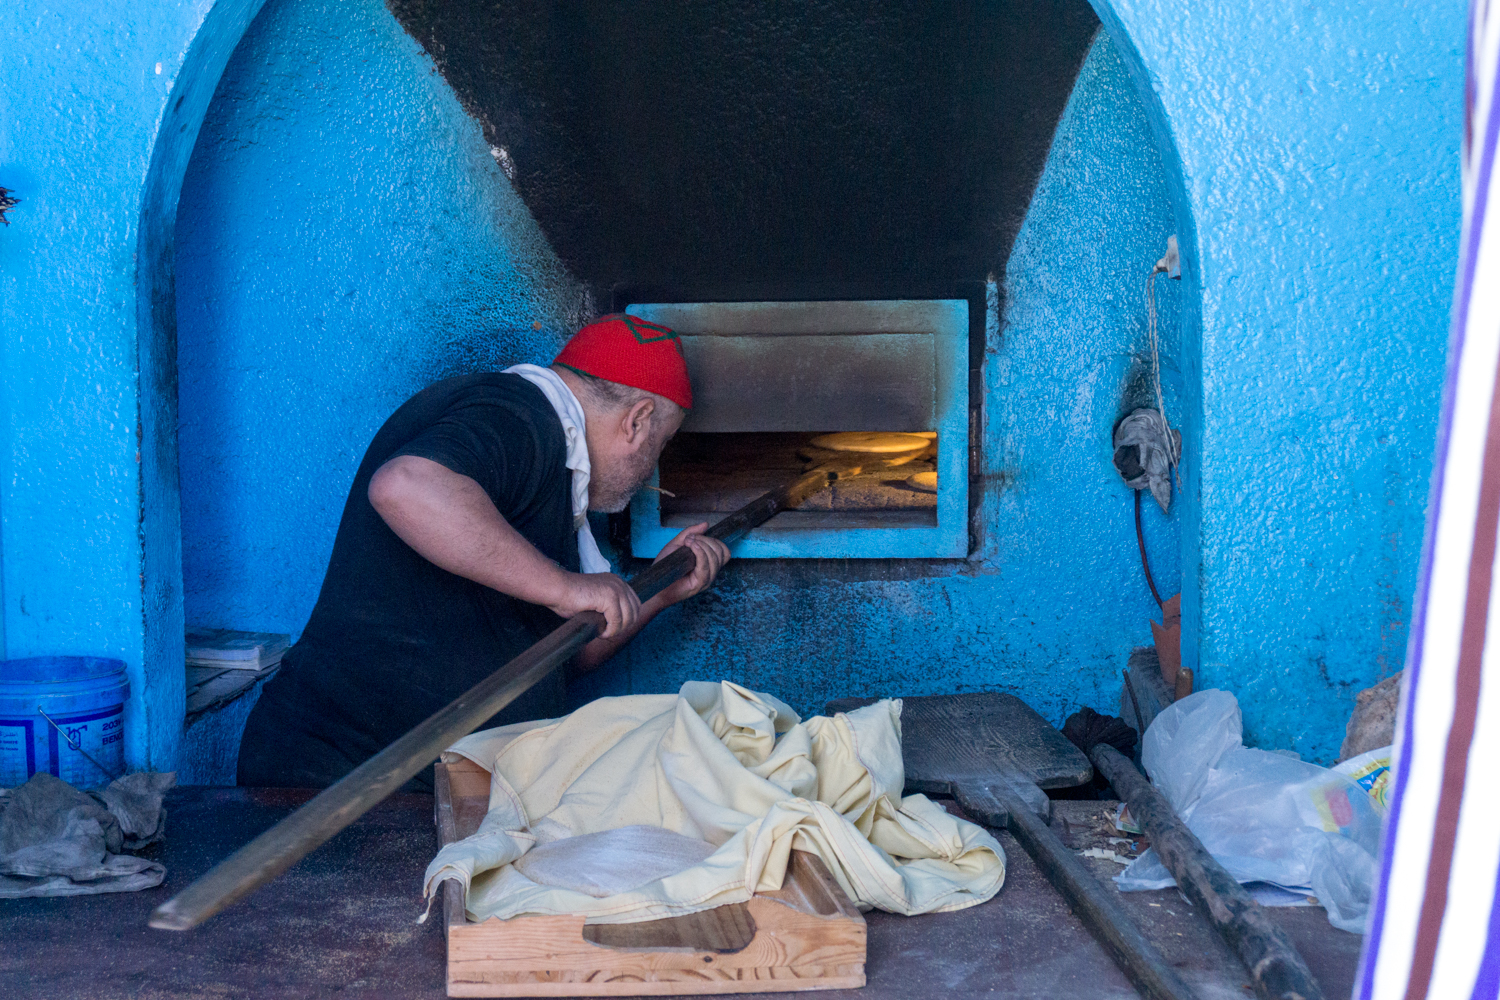 A baker in Chefchaouen making some bread in a wood burning oven.